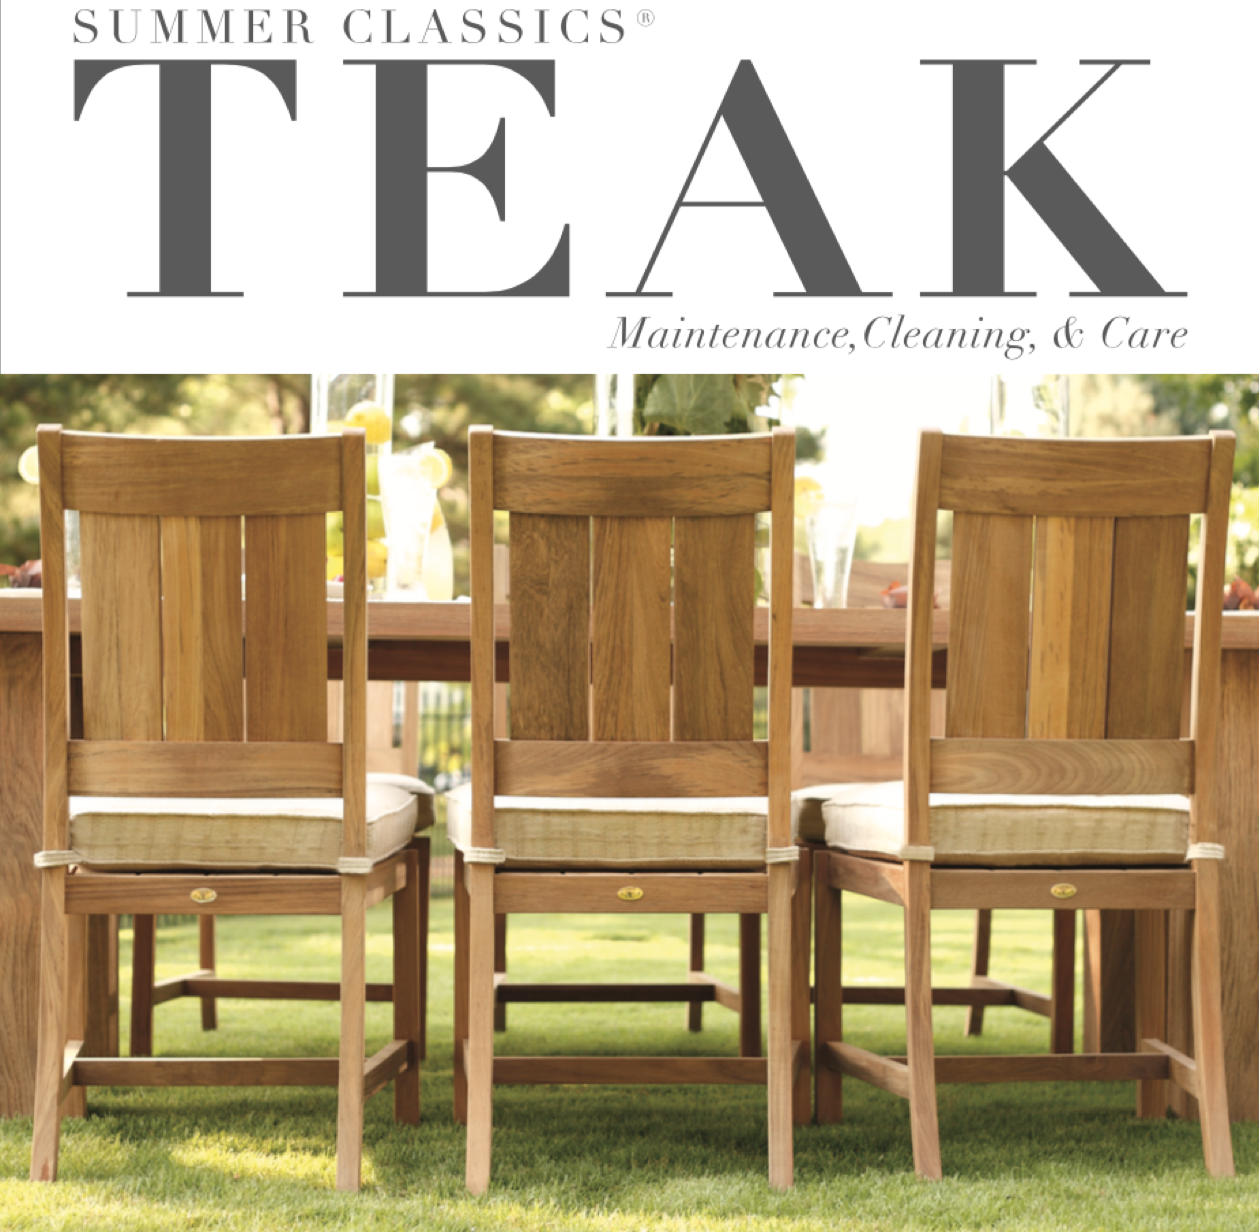 Summer Classics teak is made of the highest quality slow growth plantation  raised teak  Teak. Teak Tweak  Maintaining and Cleaning Teak Furniture   Summer Classics